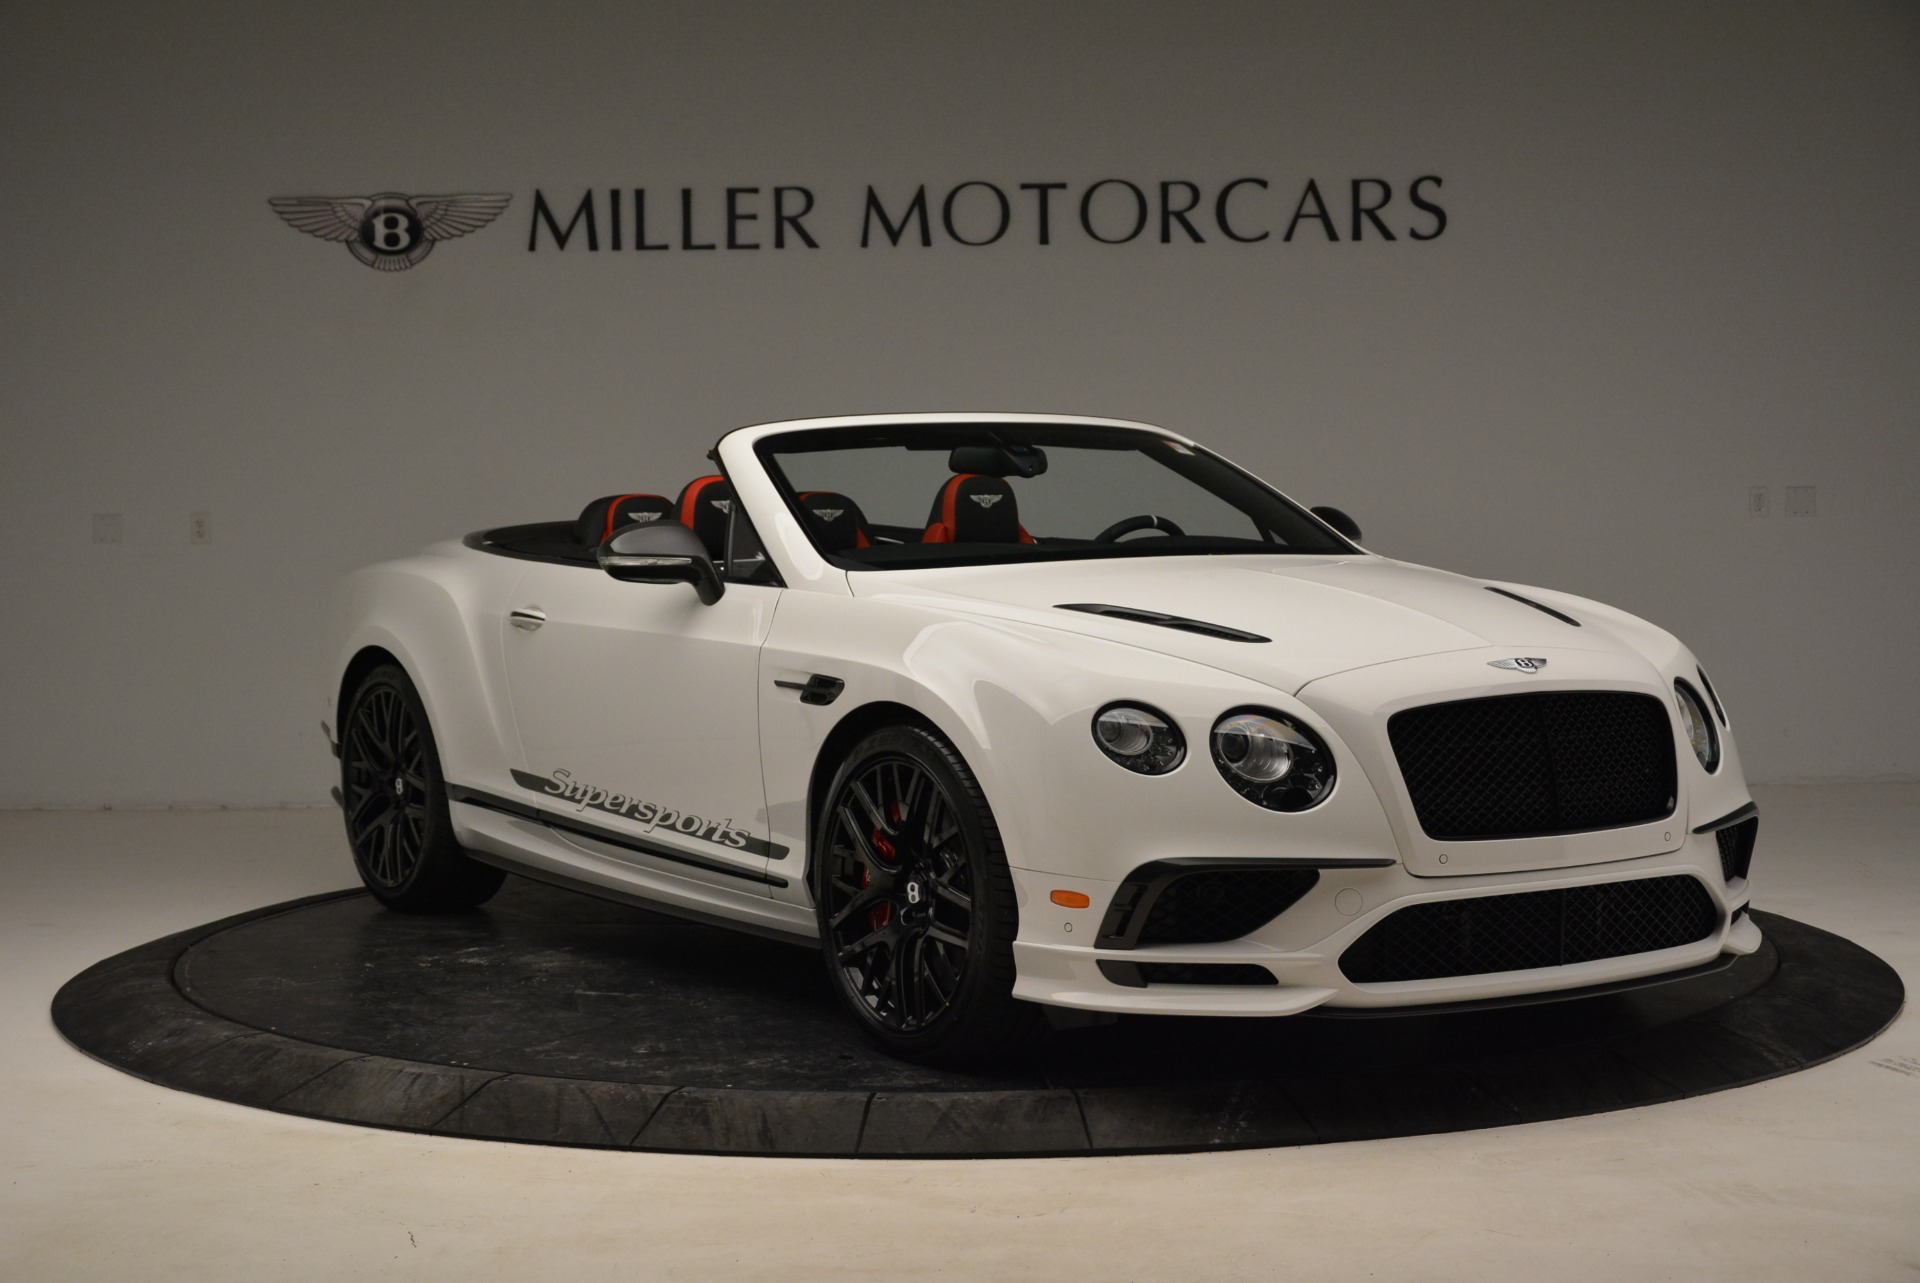 Used 2018 Bentley Continental GT Supersports Convertible For Sale In Westport, CT 1875_p11